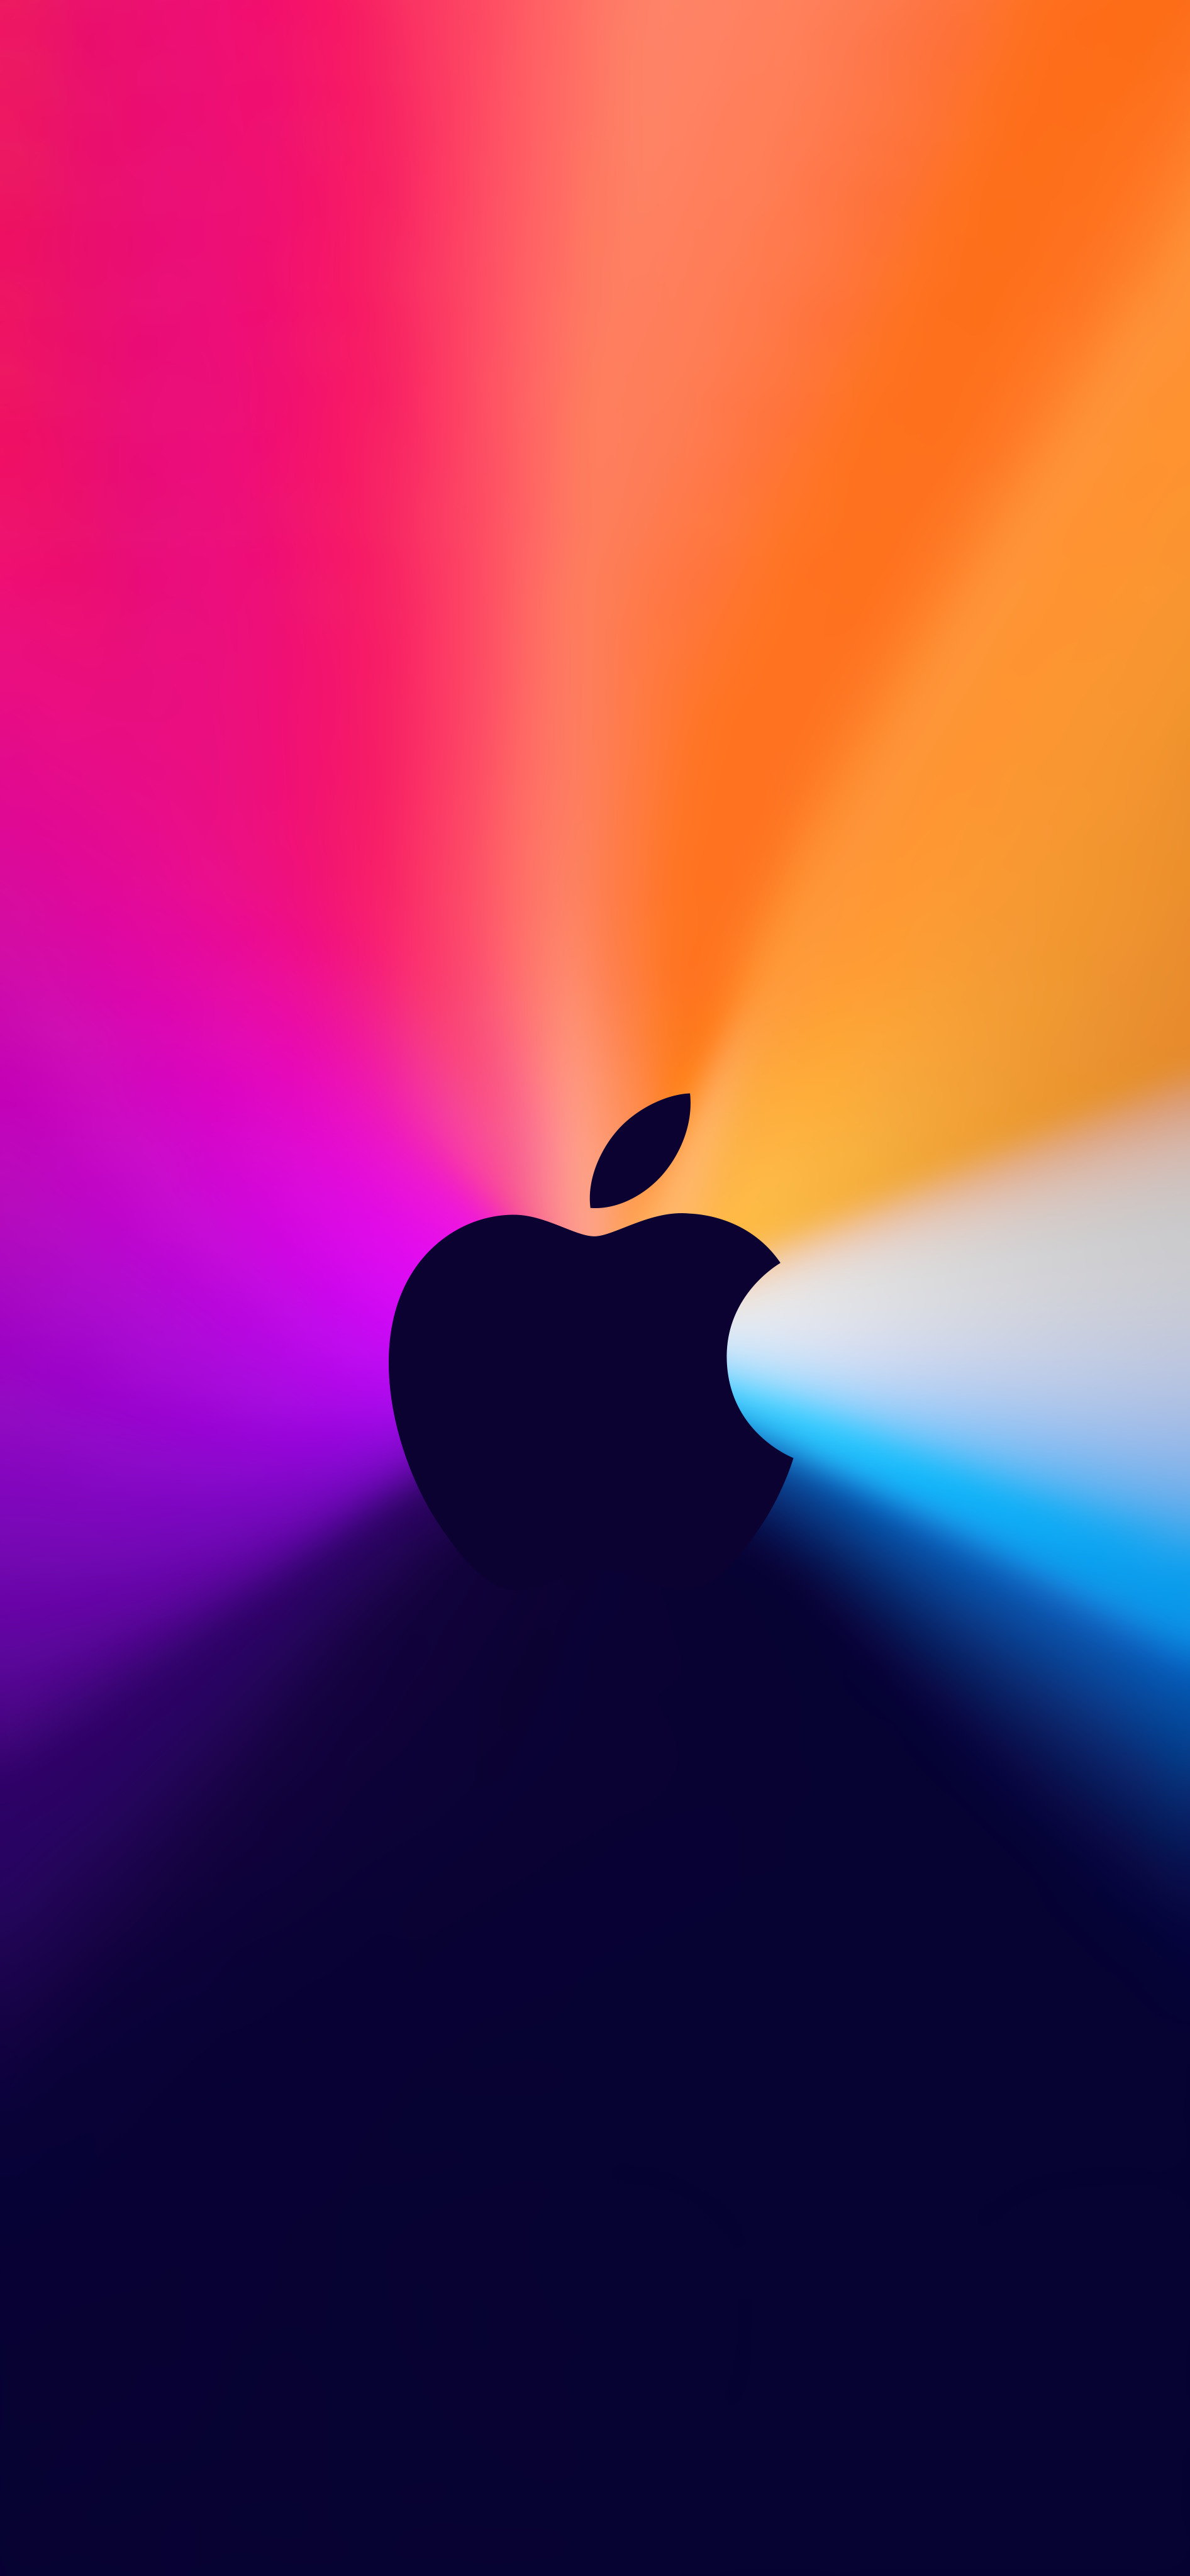 Apple One More Thing Event wallpaper idownloadblog FlareZephyr iPhone logo